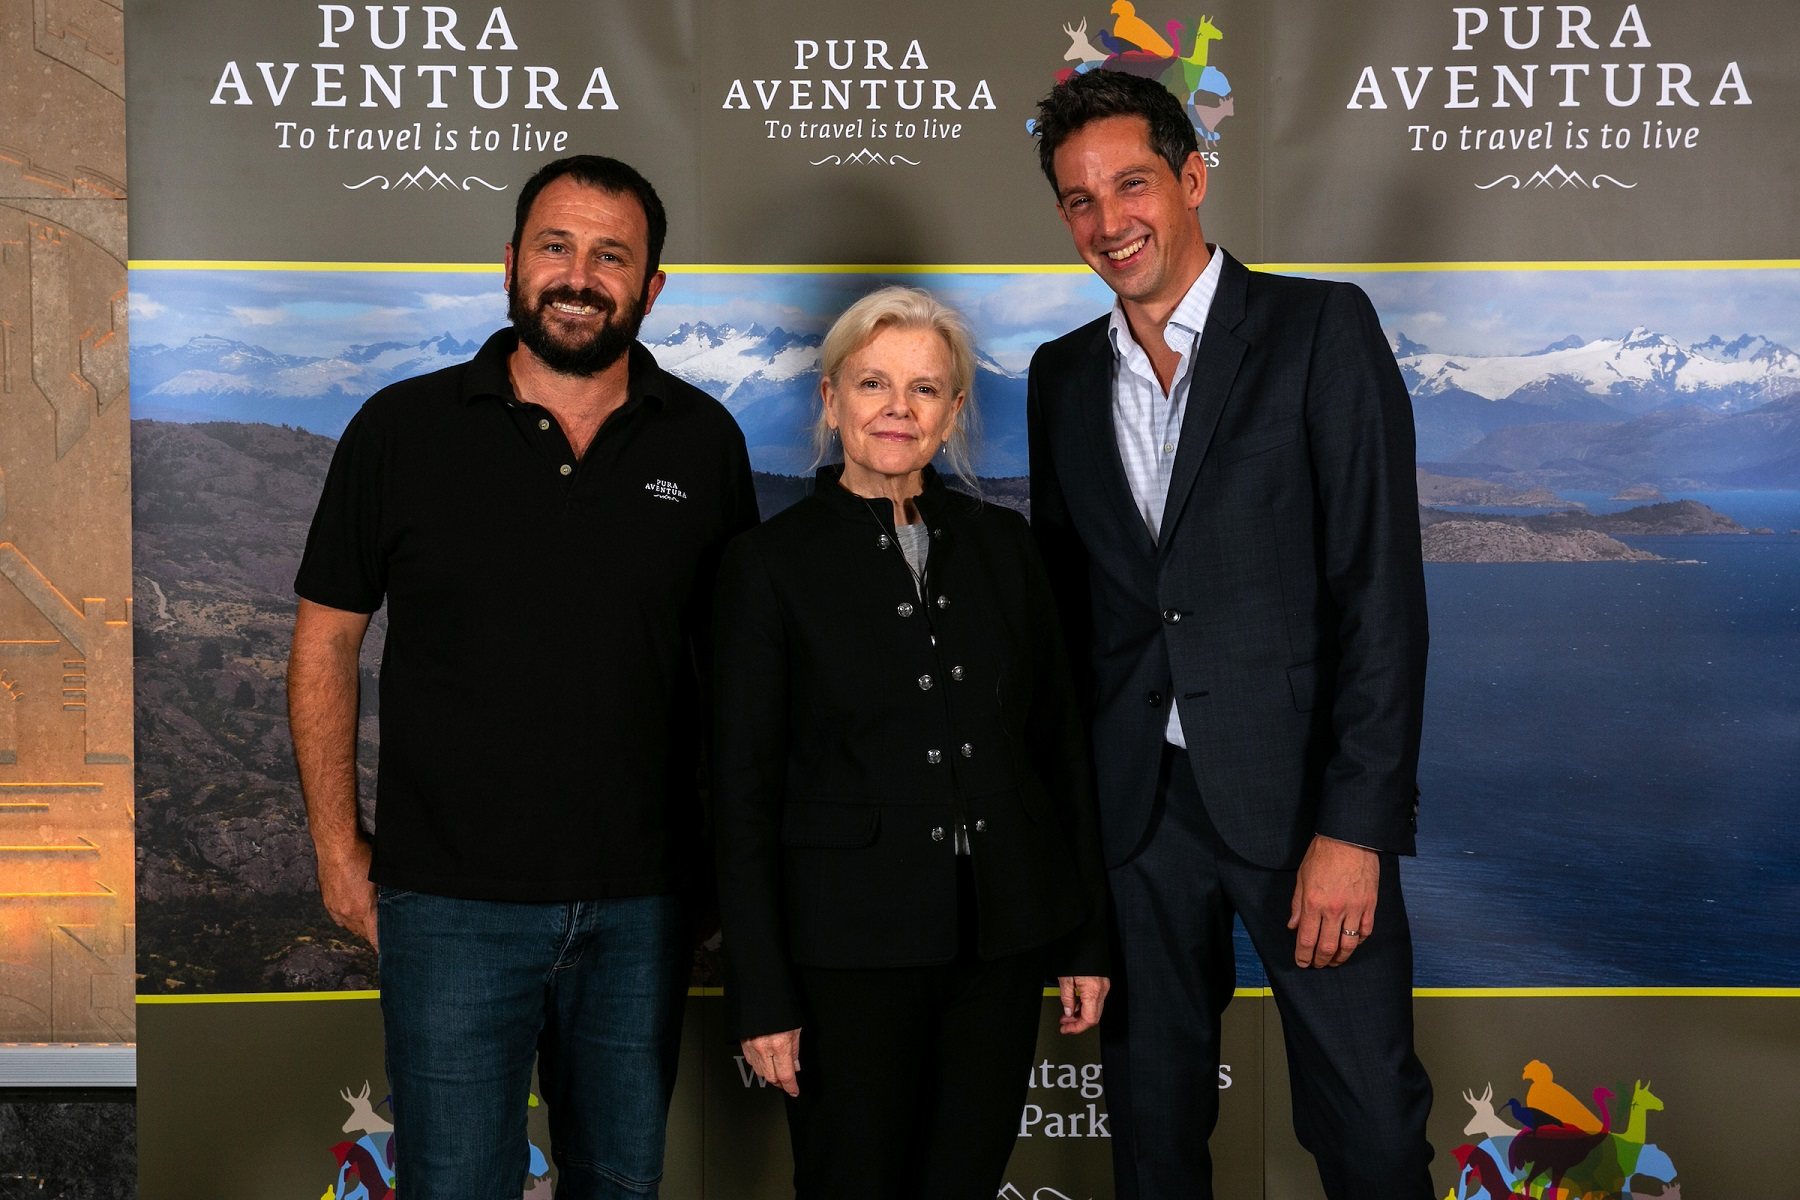 Thomas Power and Kristine Tompkins (Route of Parks) and Diego_Martin, Pura Aventura